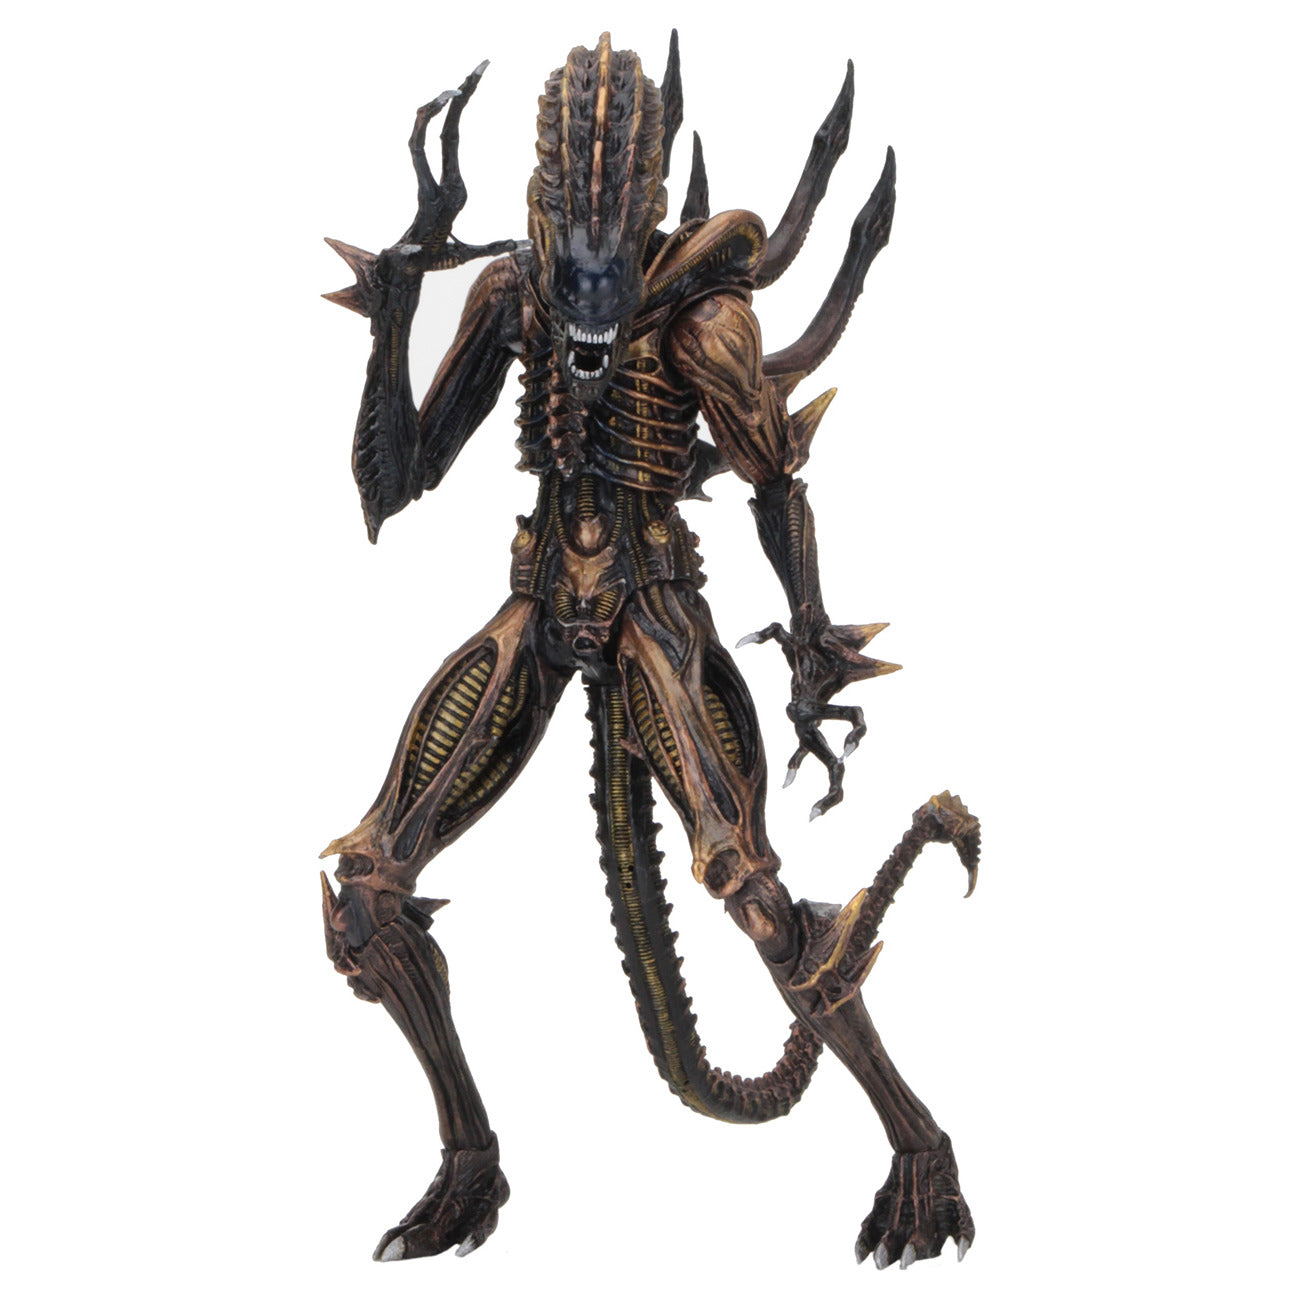 Aliens Scorpion Alien With Bendable Tail 7 inch Action Figure